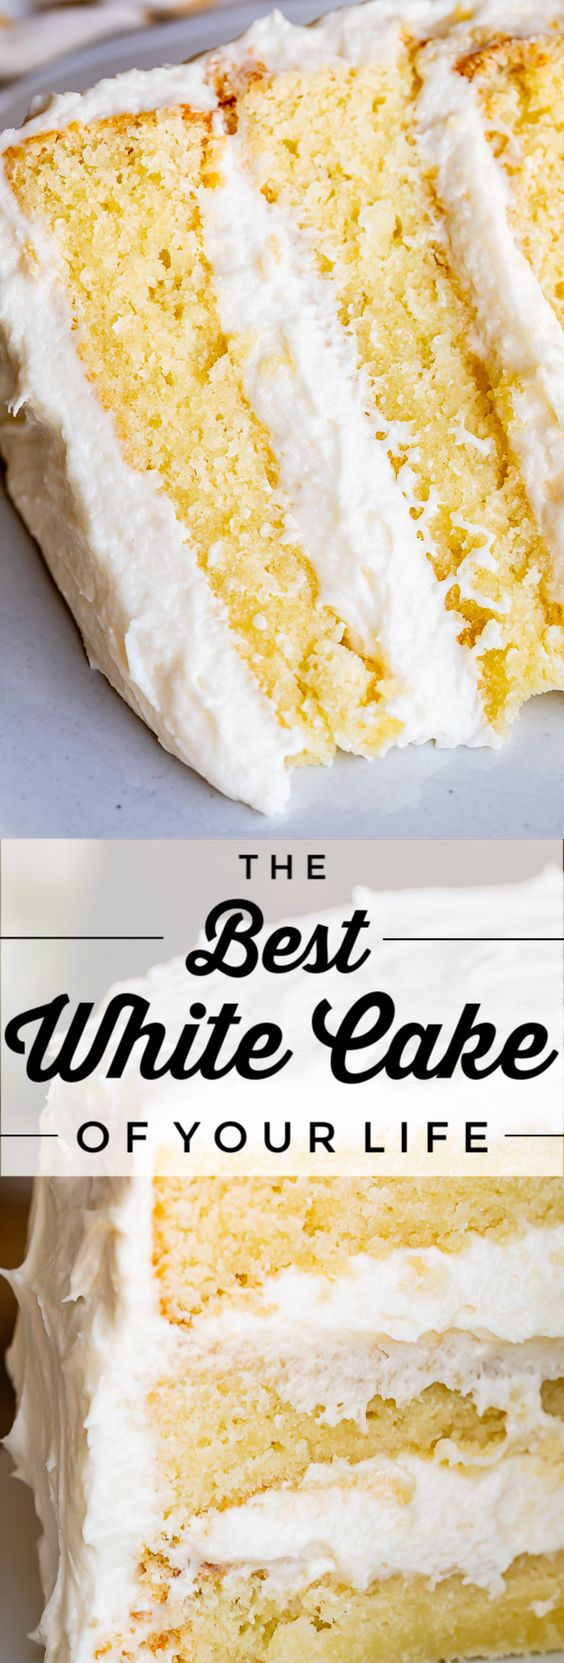 The Best Homemade White Cake Recipe of Your Life from The Food Charlatan. HALLELUJAH! Finally a moist white cake from scratch that doesn't taste like cardboard.  I promise, this will be the best homemade white cake recipe of your life! It's soft and fluffy, while still being super moist. The balance of fluffy and moist is exactly perfect for how cake ought to be! It's fluffy yet full of buttery rich flavor. #white #cake #homemade #recipe #moist #fromscratch #easy #frosting #best #simple #perfect